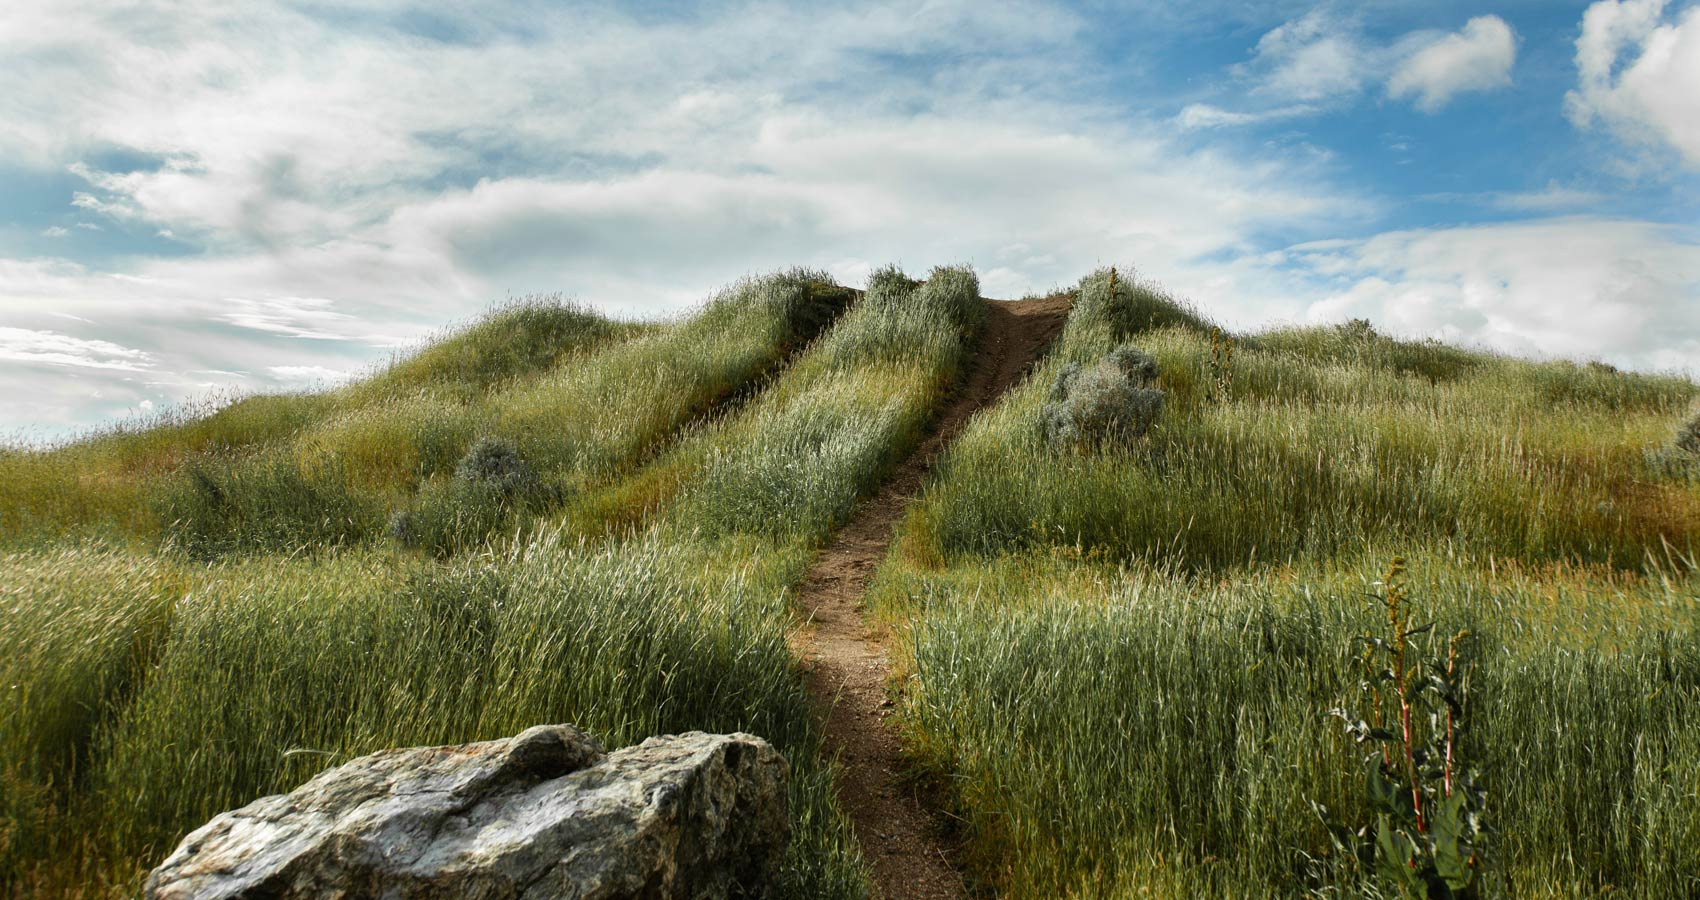 The Path, a poem by Glynn Sinclare at Spillwords.com